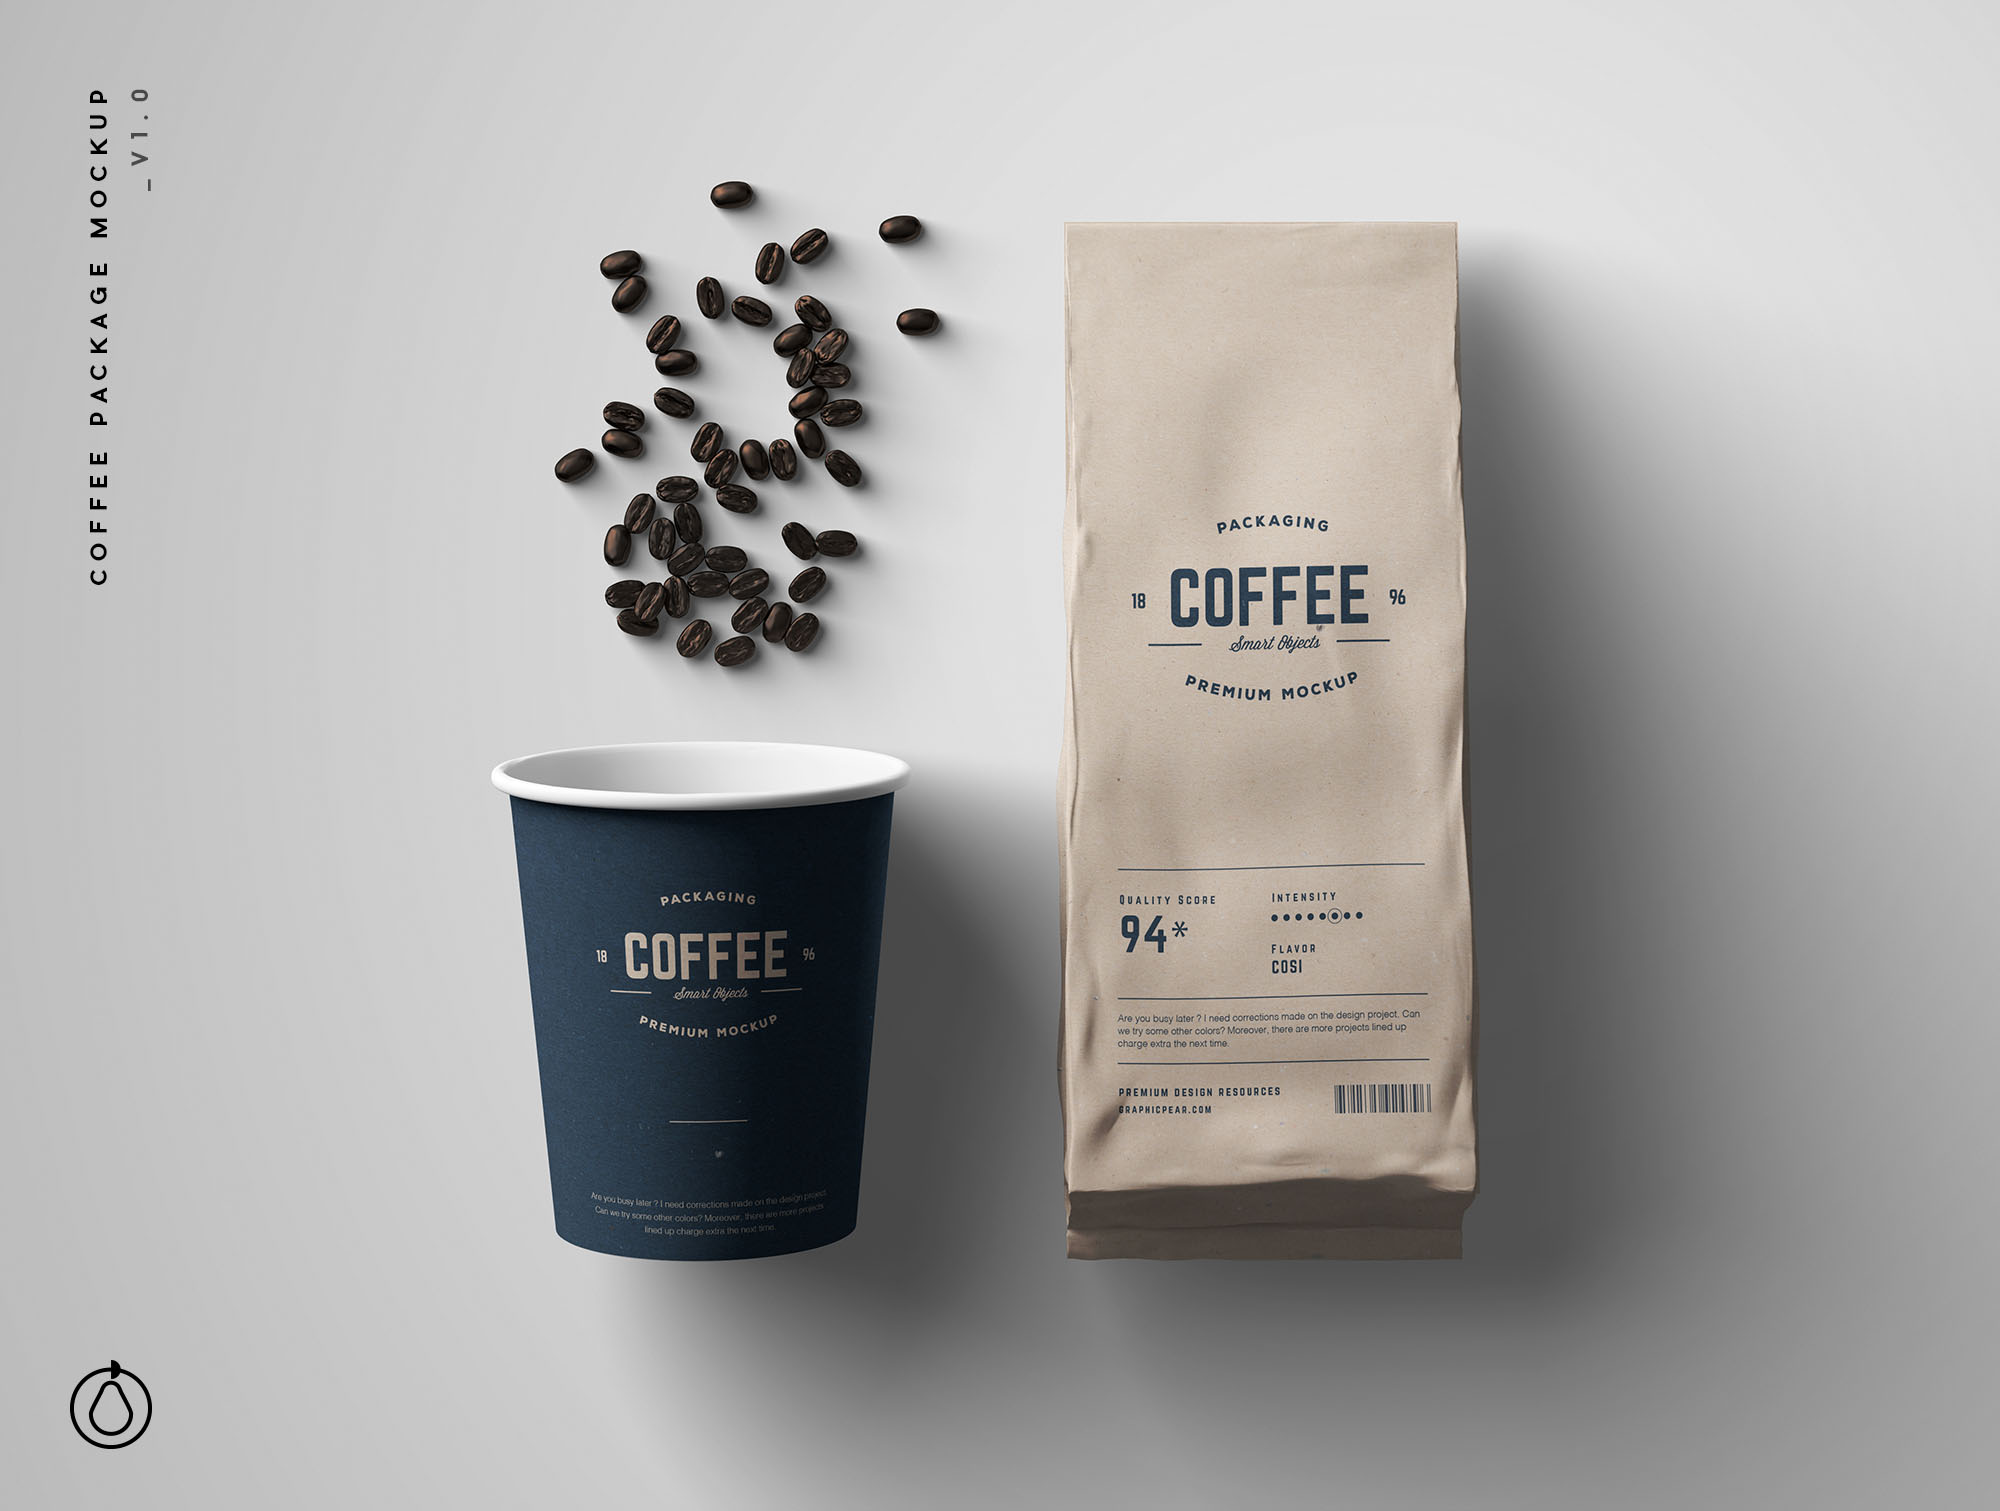 Coffee Packaging Bag & Cup Mockup